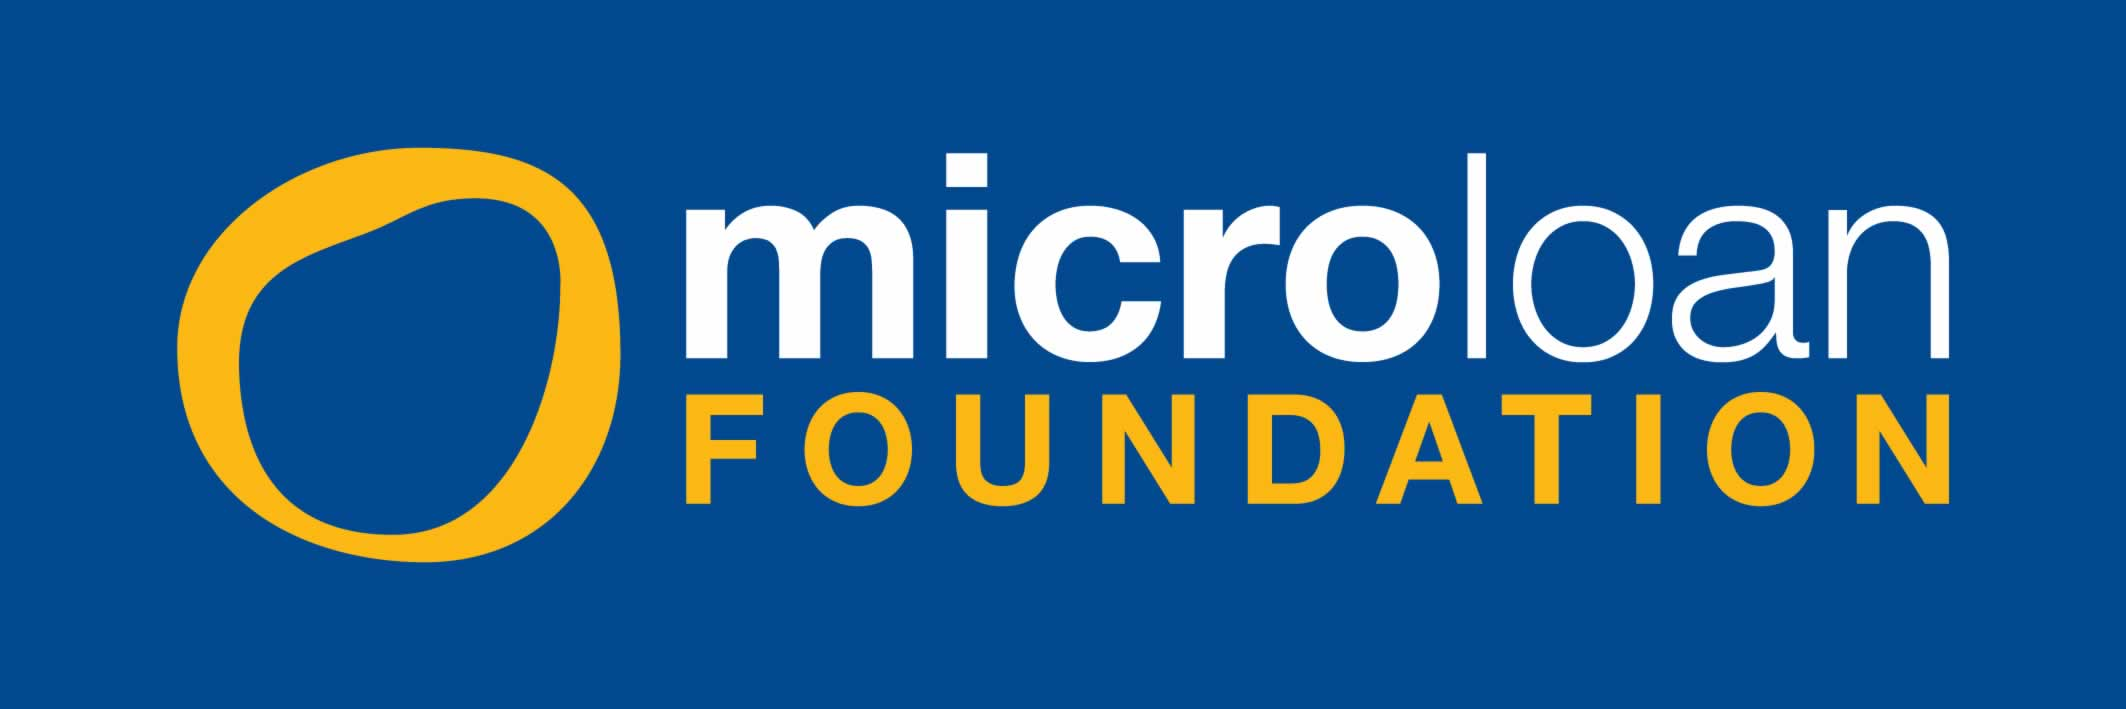 MicroLoan Foundation